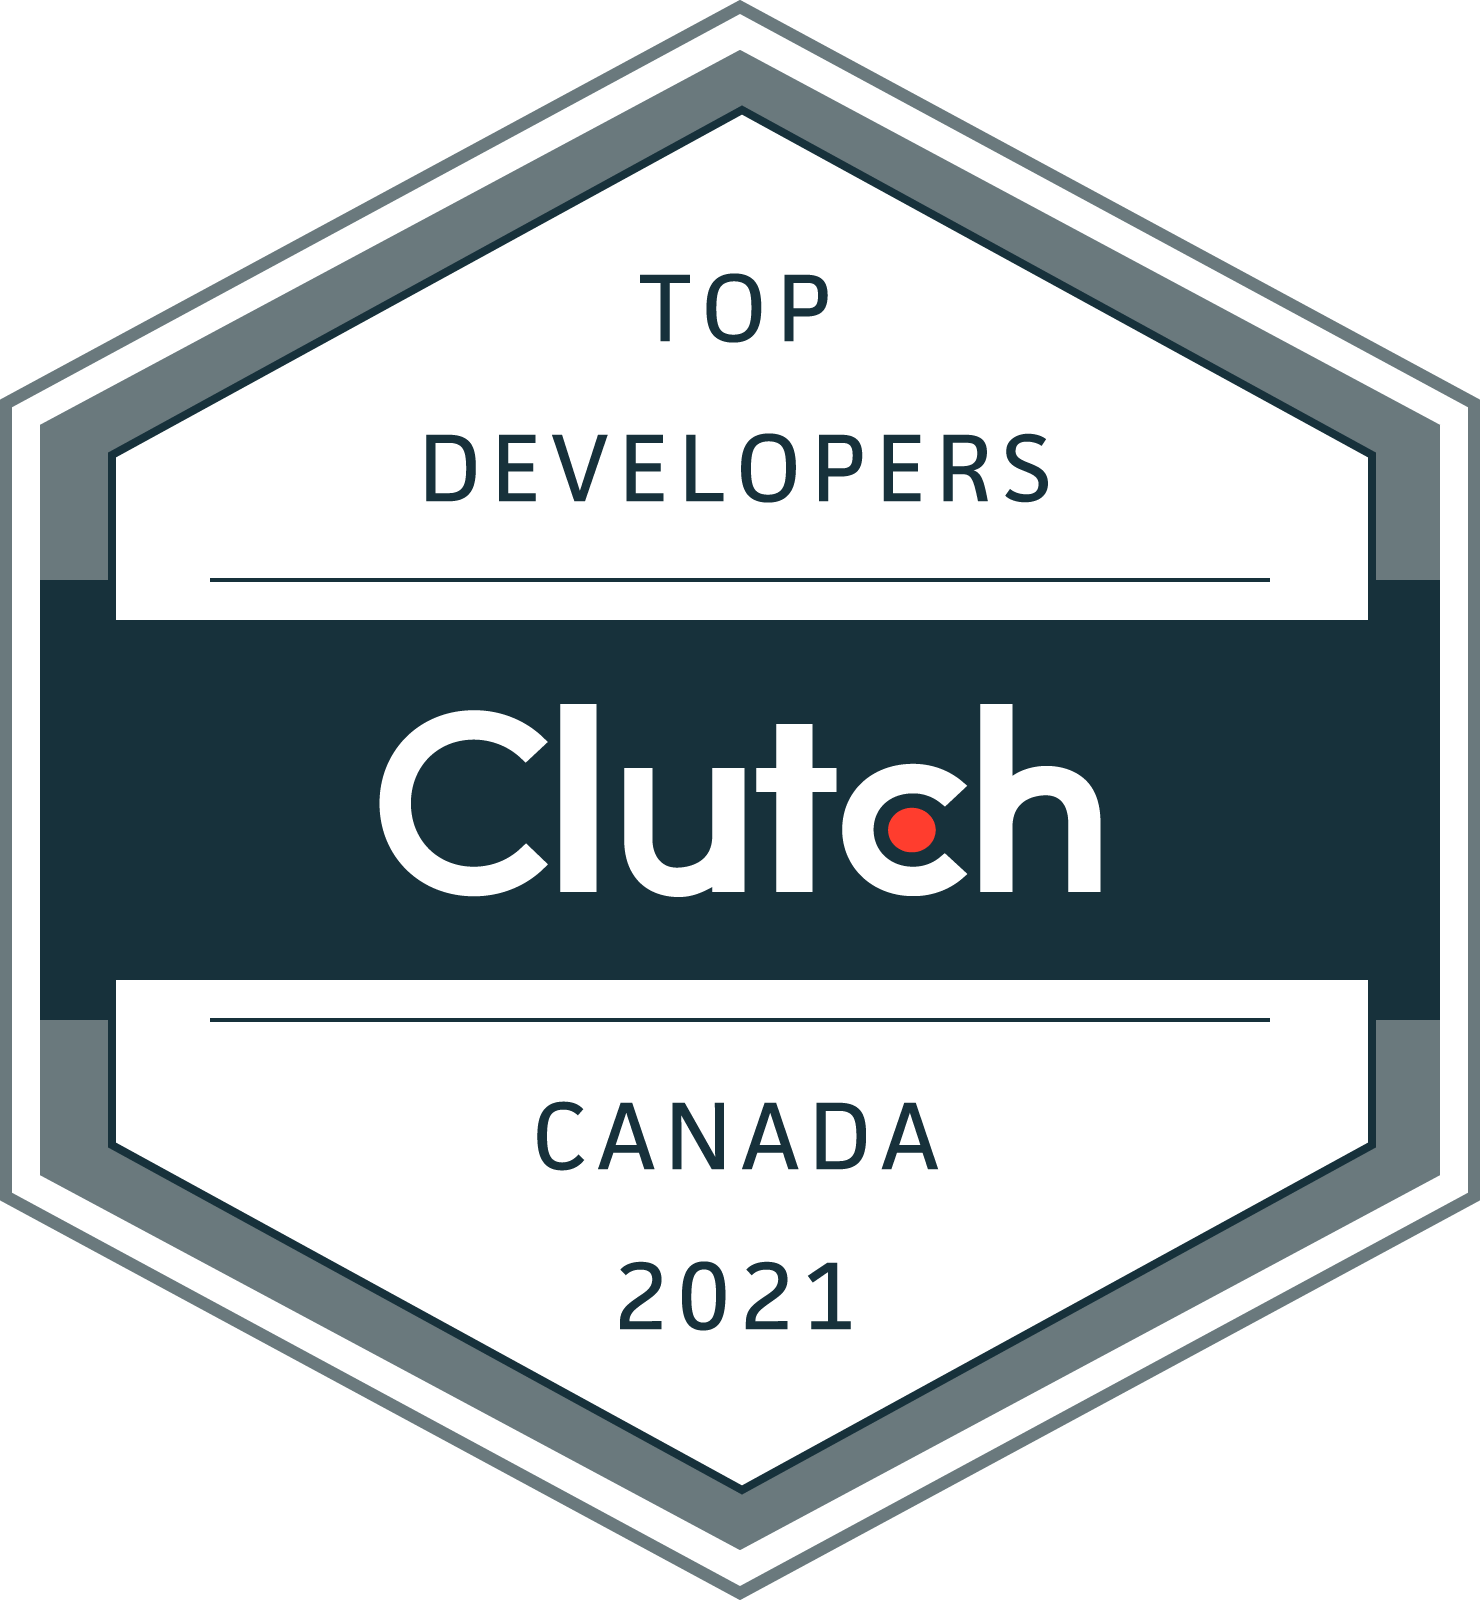 Canada's Top Developers Award 2021